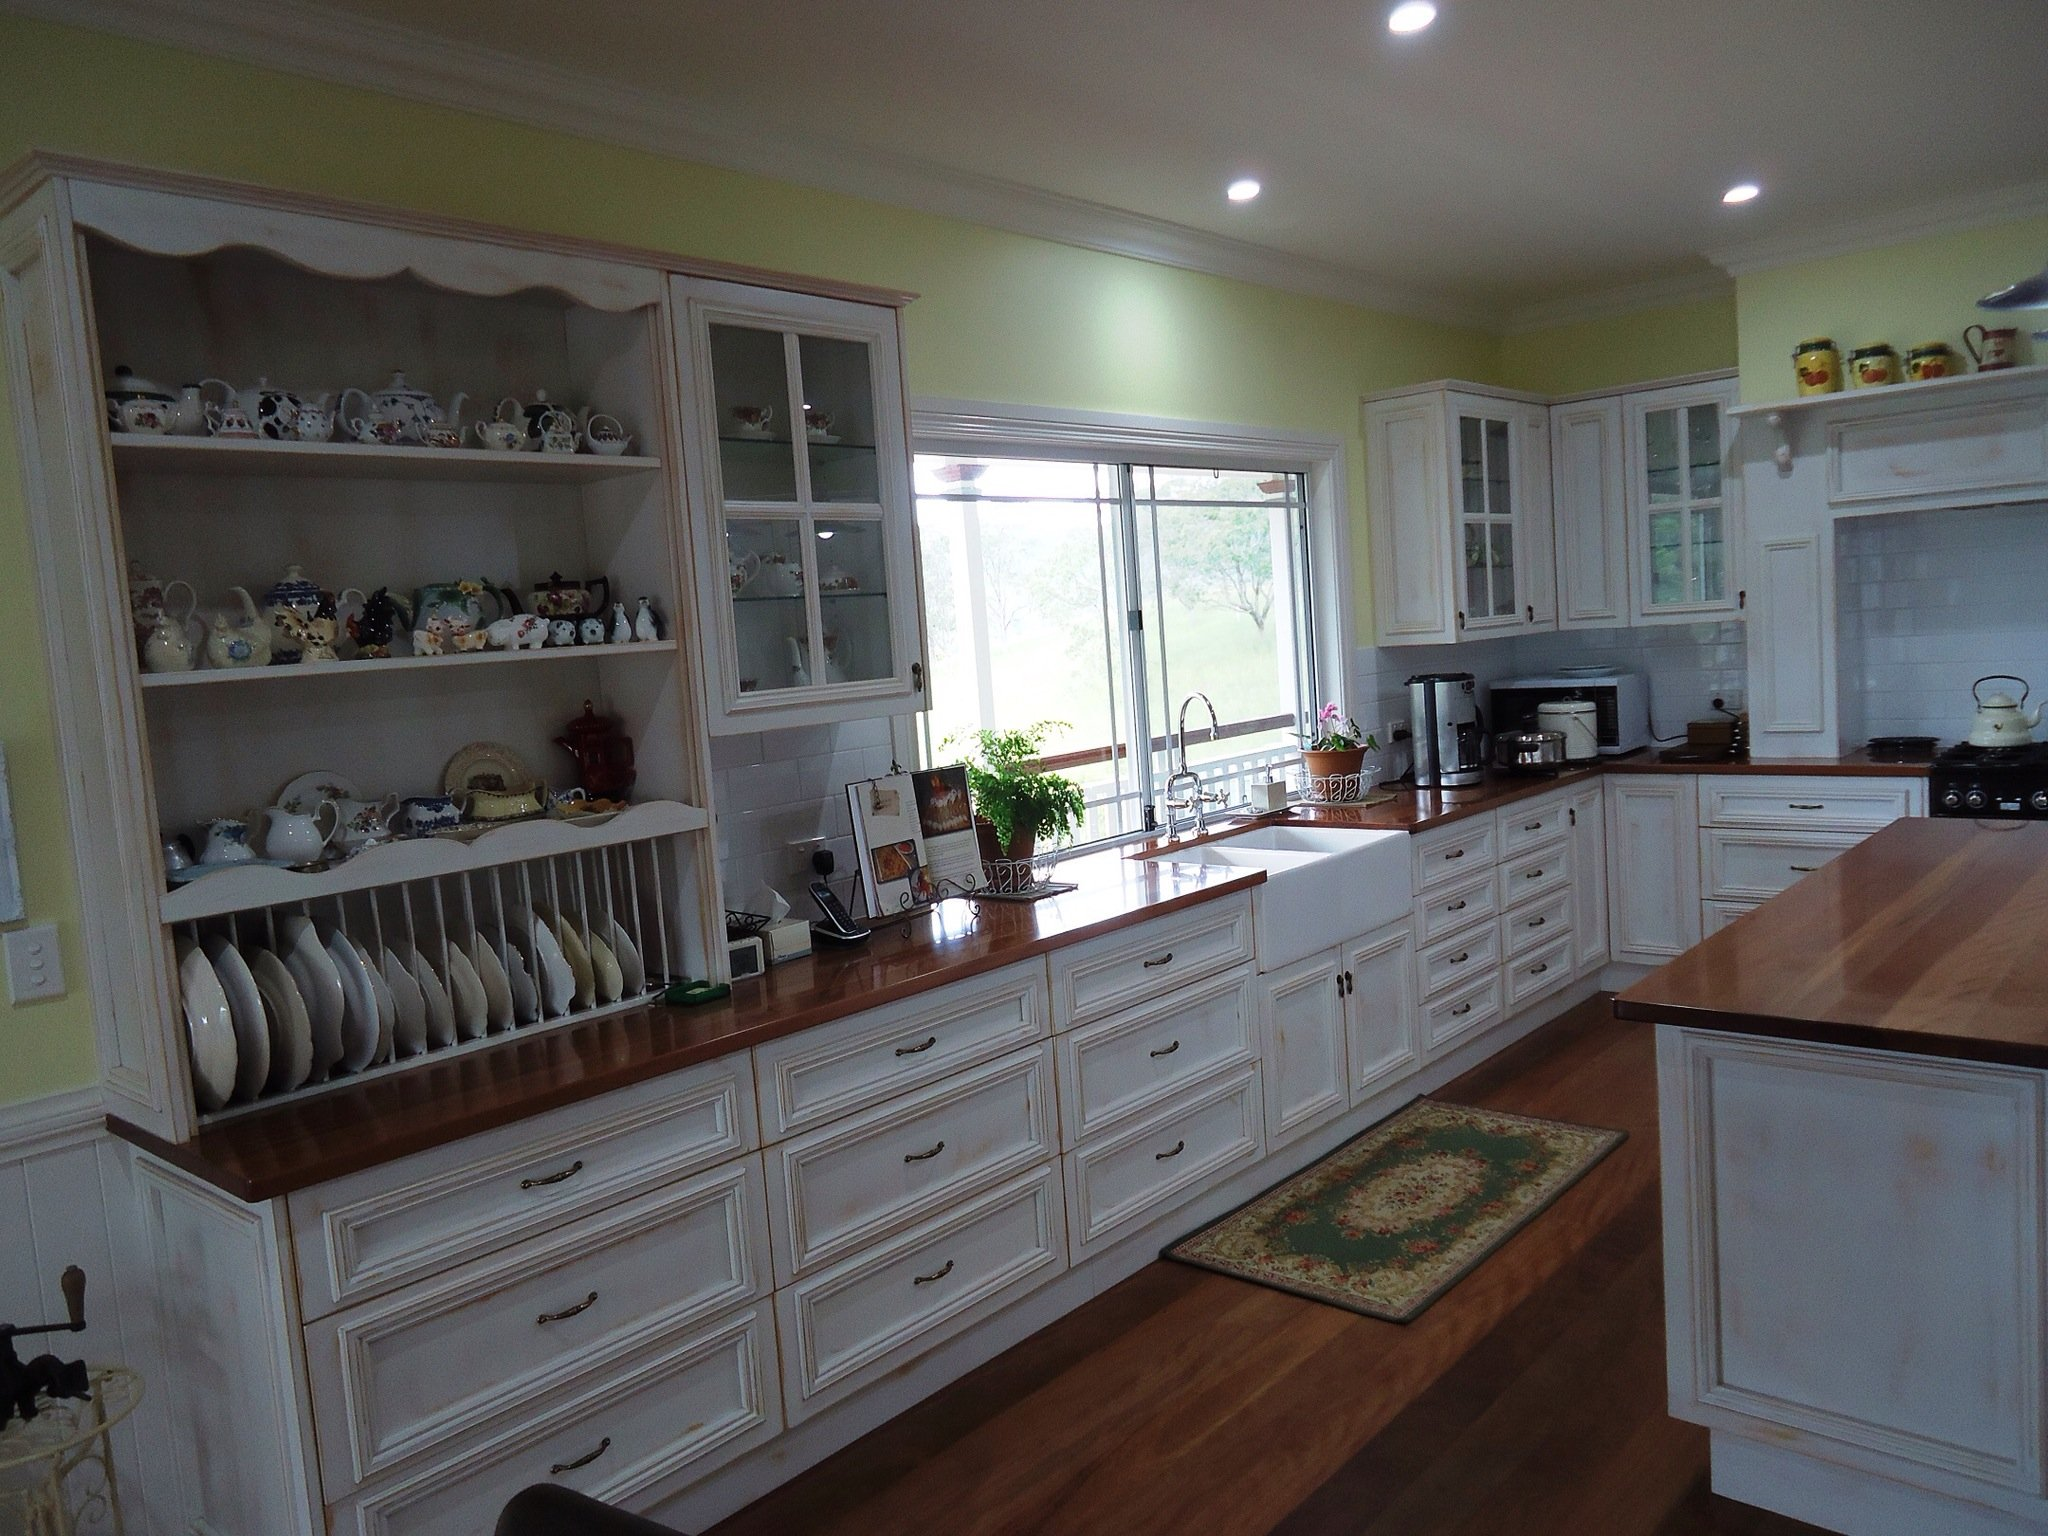 Cabinet makers sunshine coast qld kitchen cabinets for Cabinet makers